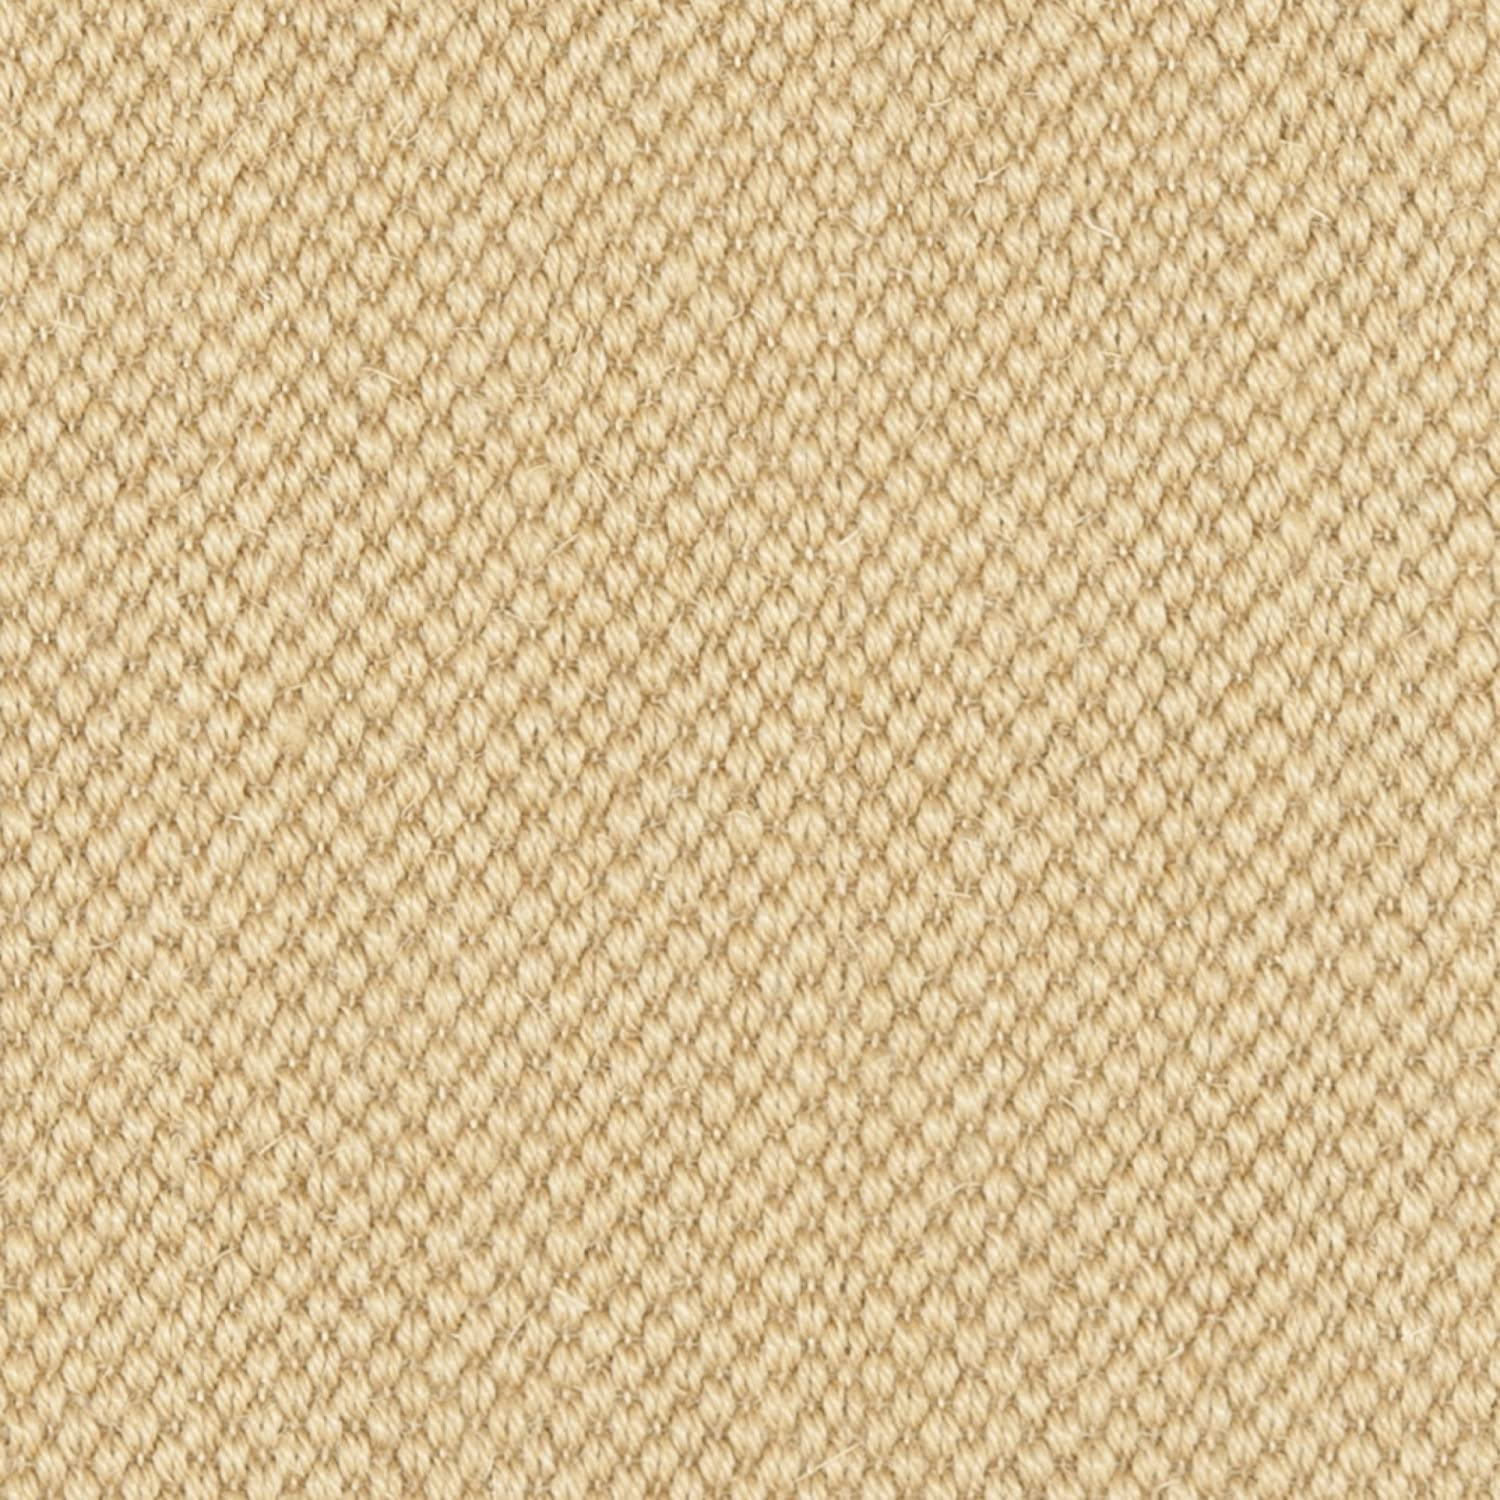 Safavieh Natural Fiber Collection NF443A Tiger Eye Maize and Wheat Sisal Runner NF443A-26 26 x 6